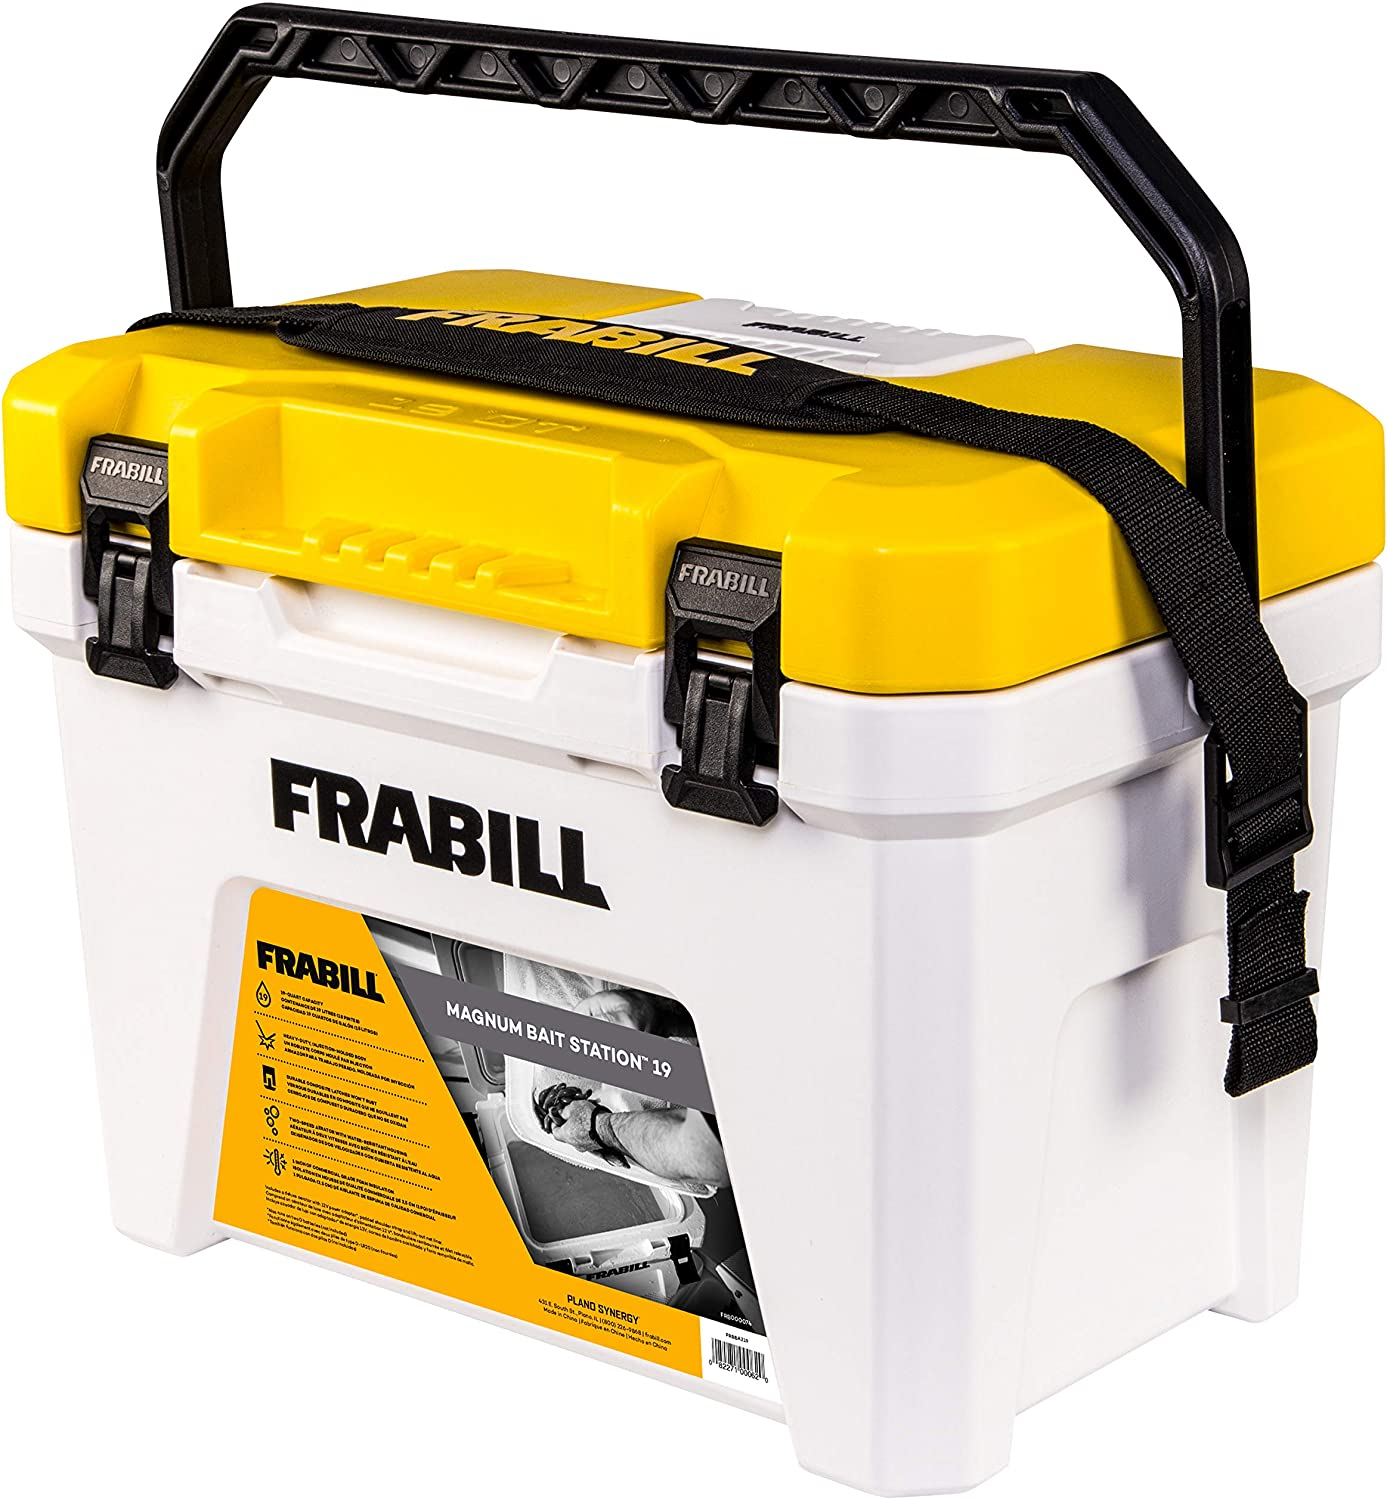 Frabill Magnum Bait Station 30 | 30 Quart Bait Cooler with Dual Aeration